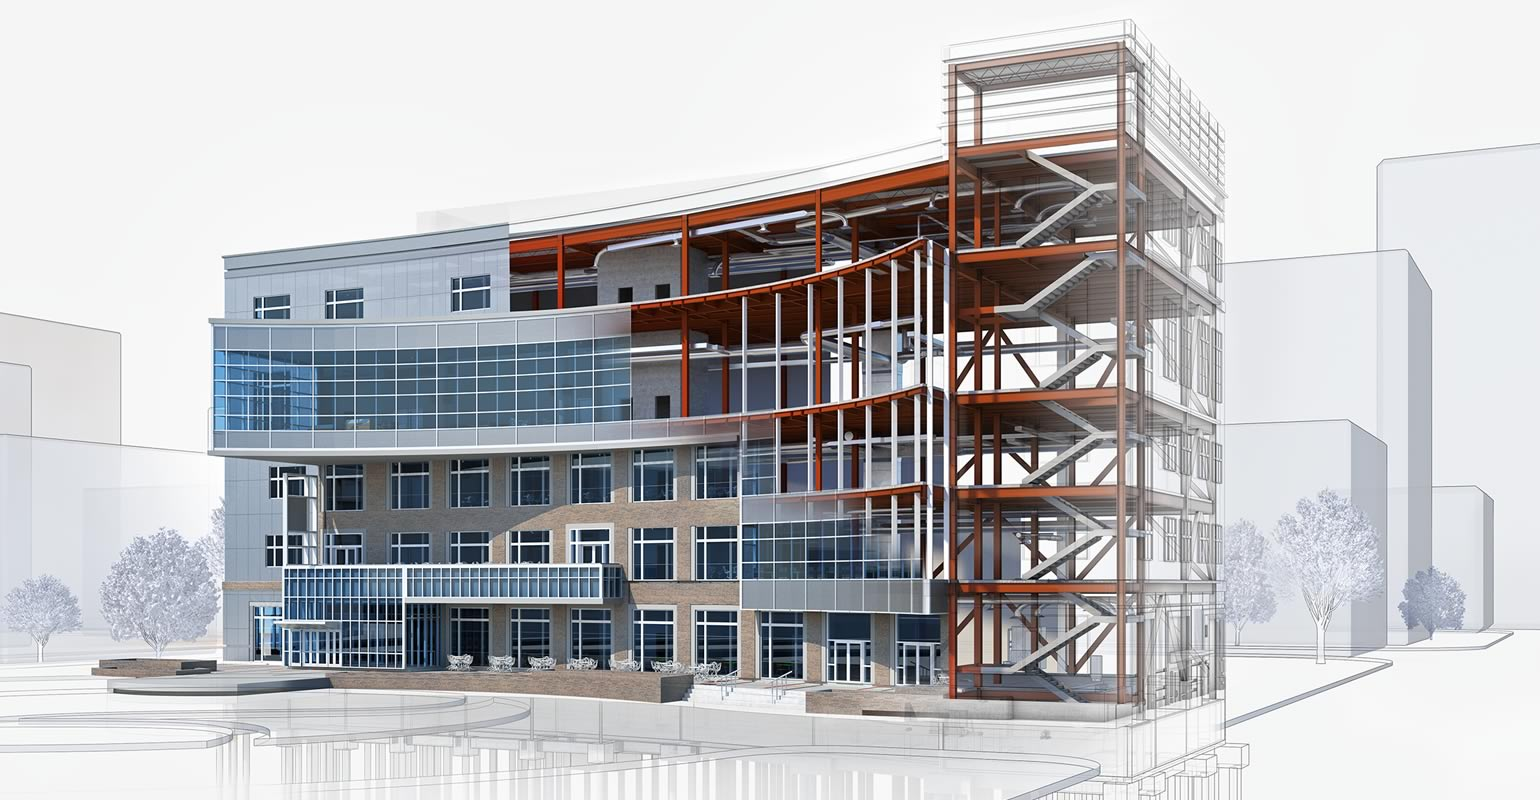 Revit Drafting Professional - Pate Architects is seeking a talented, energetic Revit drafting professional to join their dedicated team.